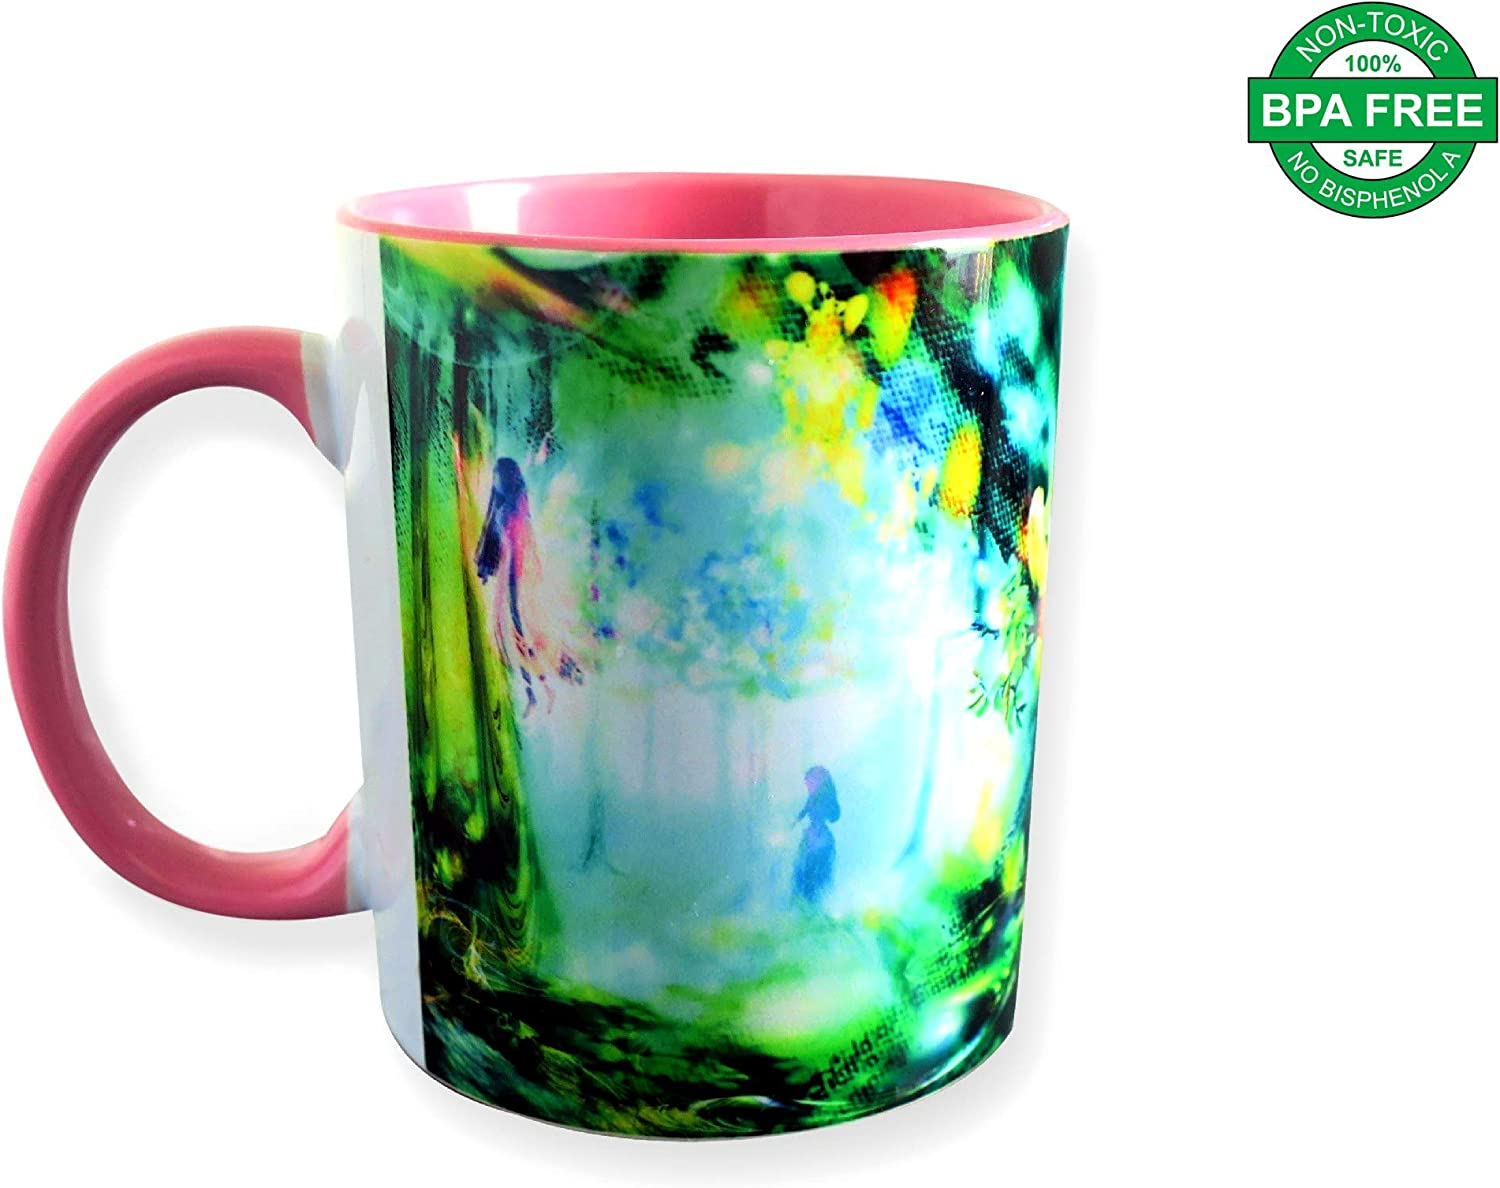 Unique Ceramic Mug | Elegant Luxury Collection | 12 OZ | Coffee Mugs | Cups for Coffee and Tea | Mugs with Designs | Mugs for Girls, Women & Kids | Mugs for Hot Chocolate | Gifts for Her